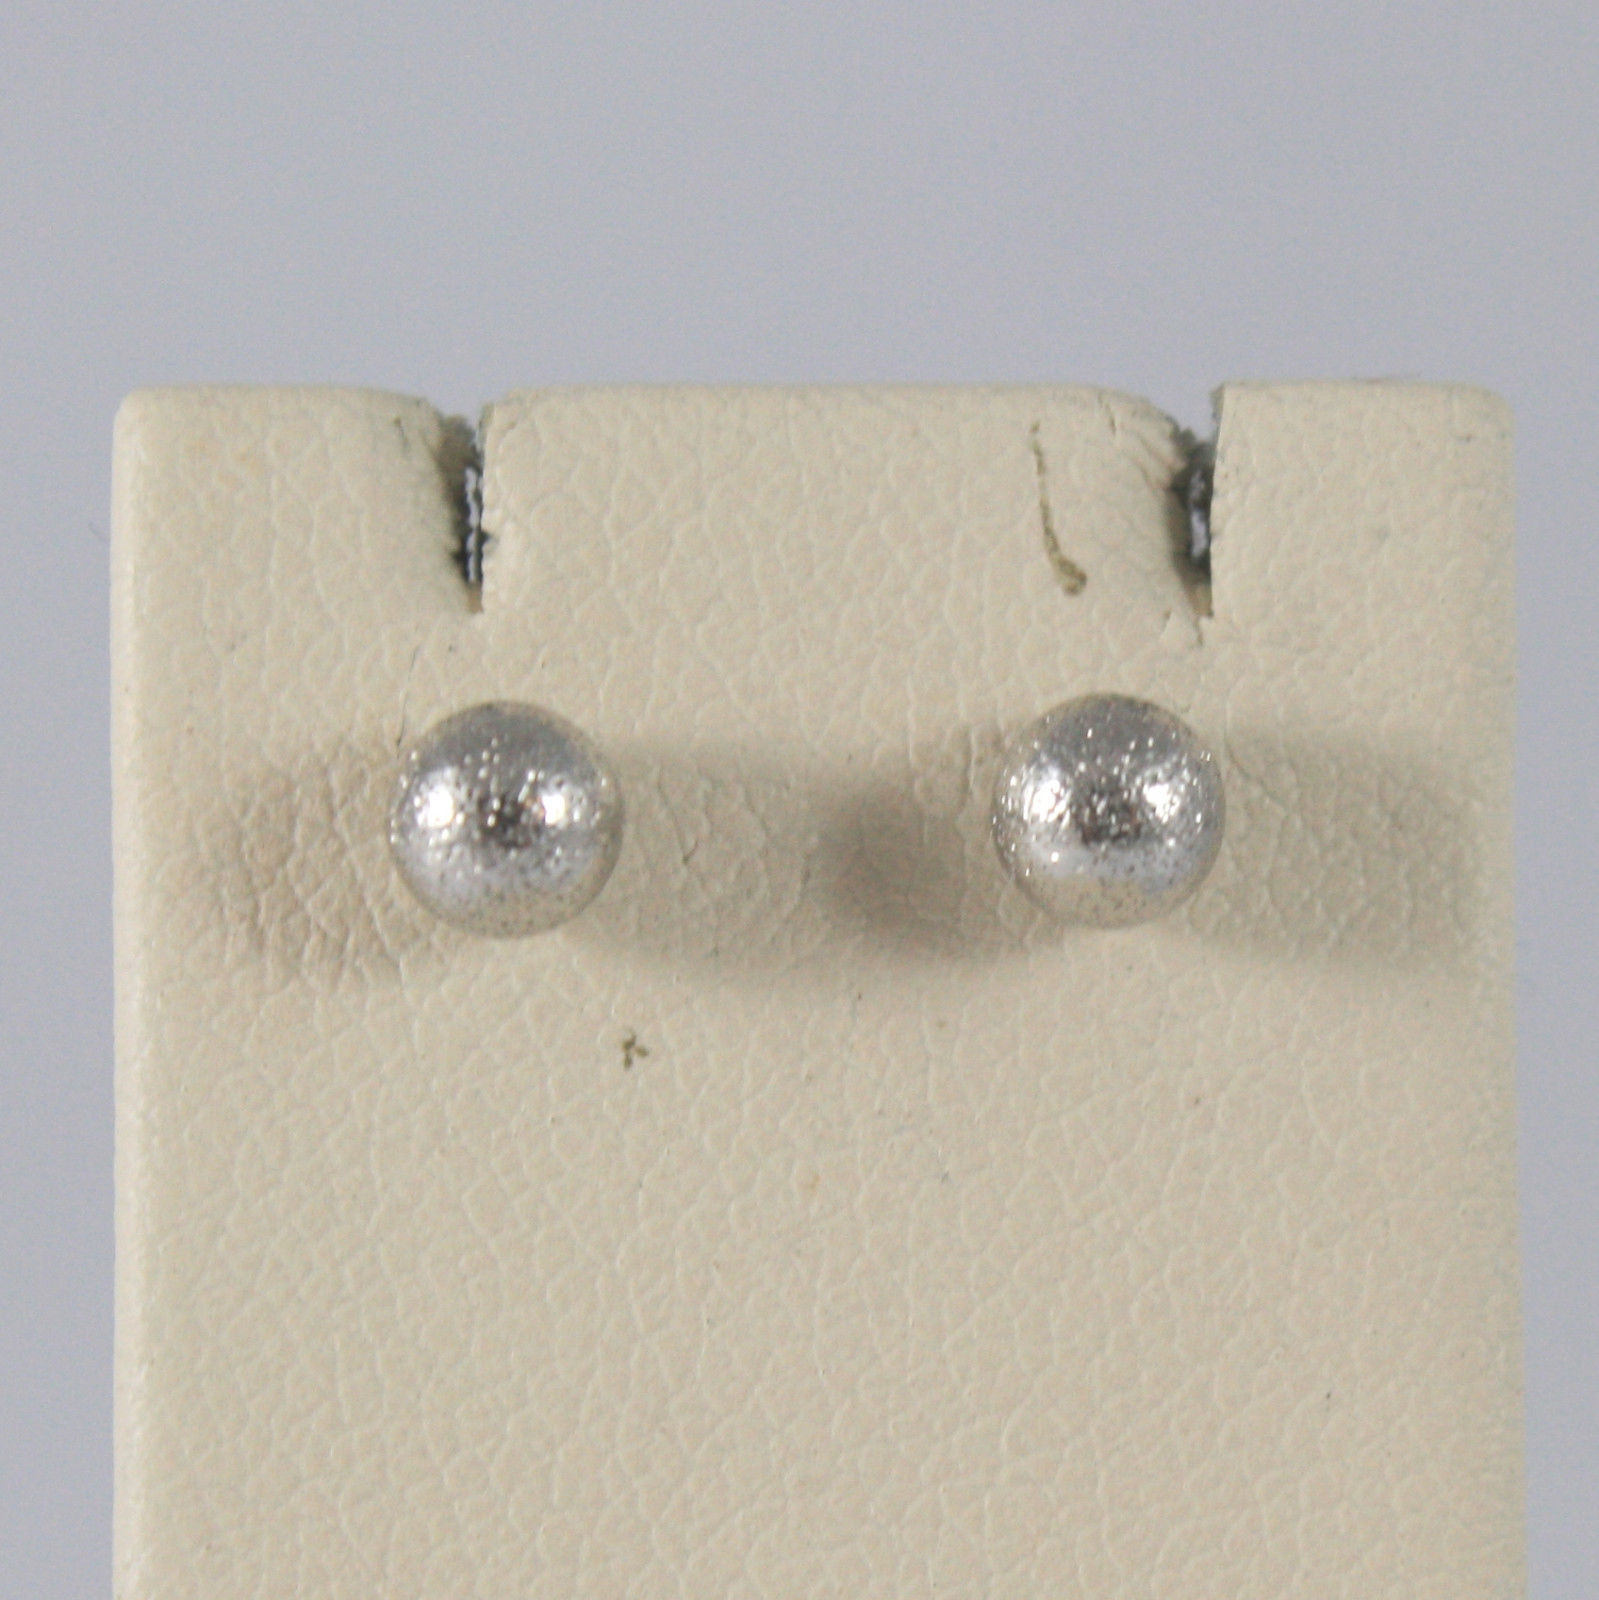 SOLID 18KT.WHITE GOLD EARRINGS, WITH SATIN SPHERES, WIDTH 0,16 IN MADE IN ITALY.